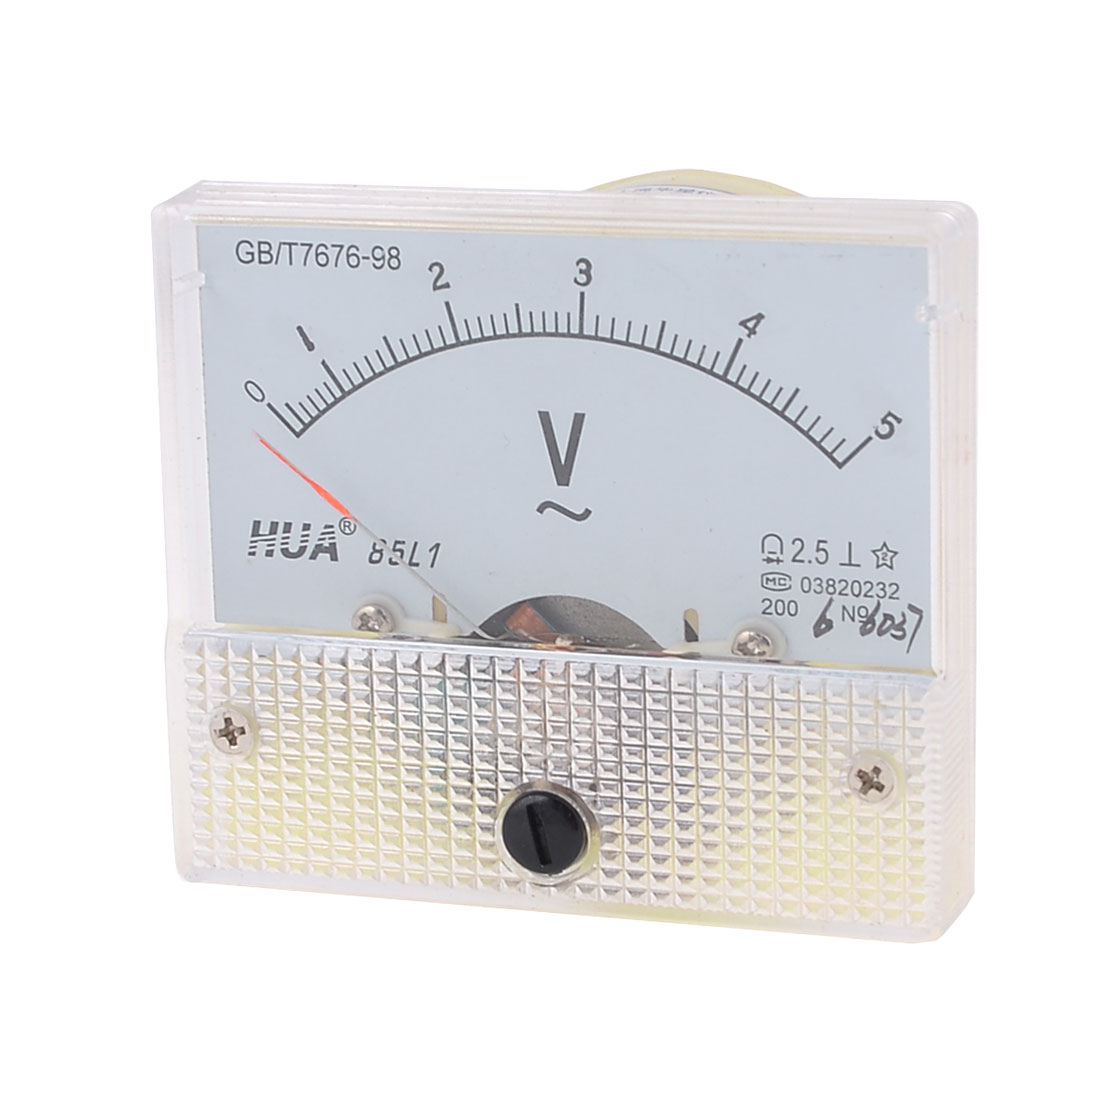 85L1 AC 0-5V Voltmeter Voltage Panel Meter w Installing Parts